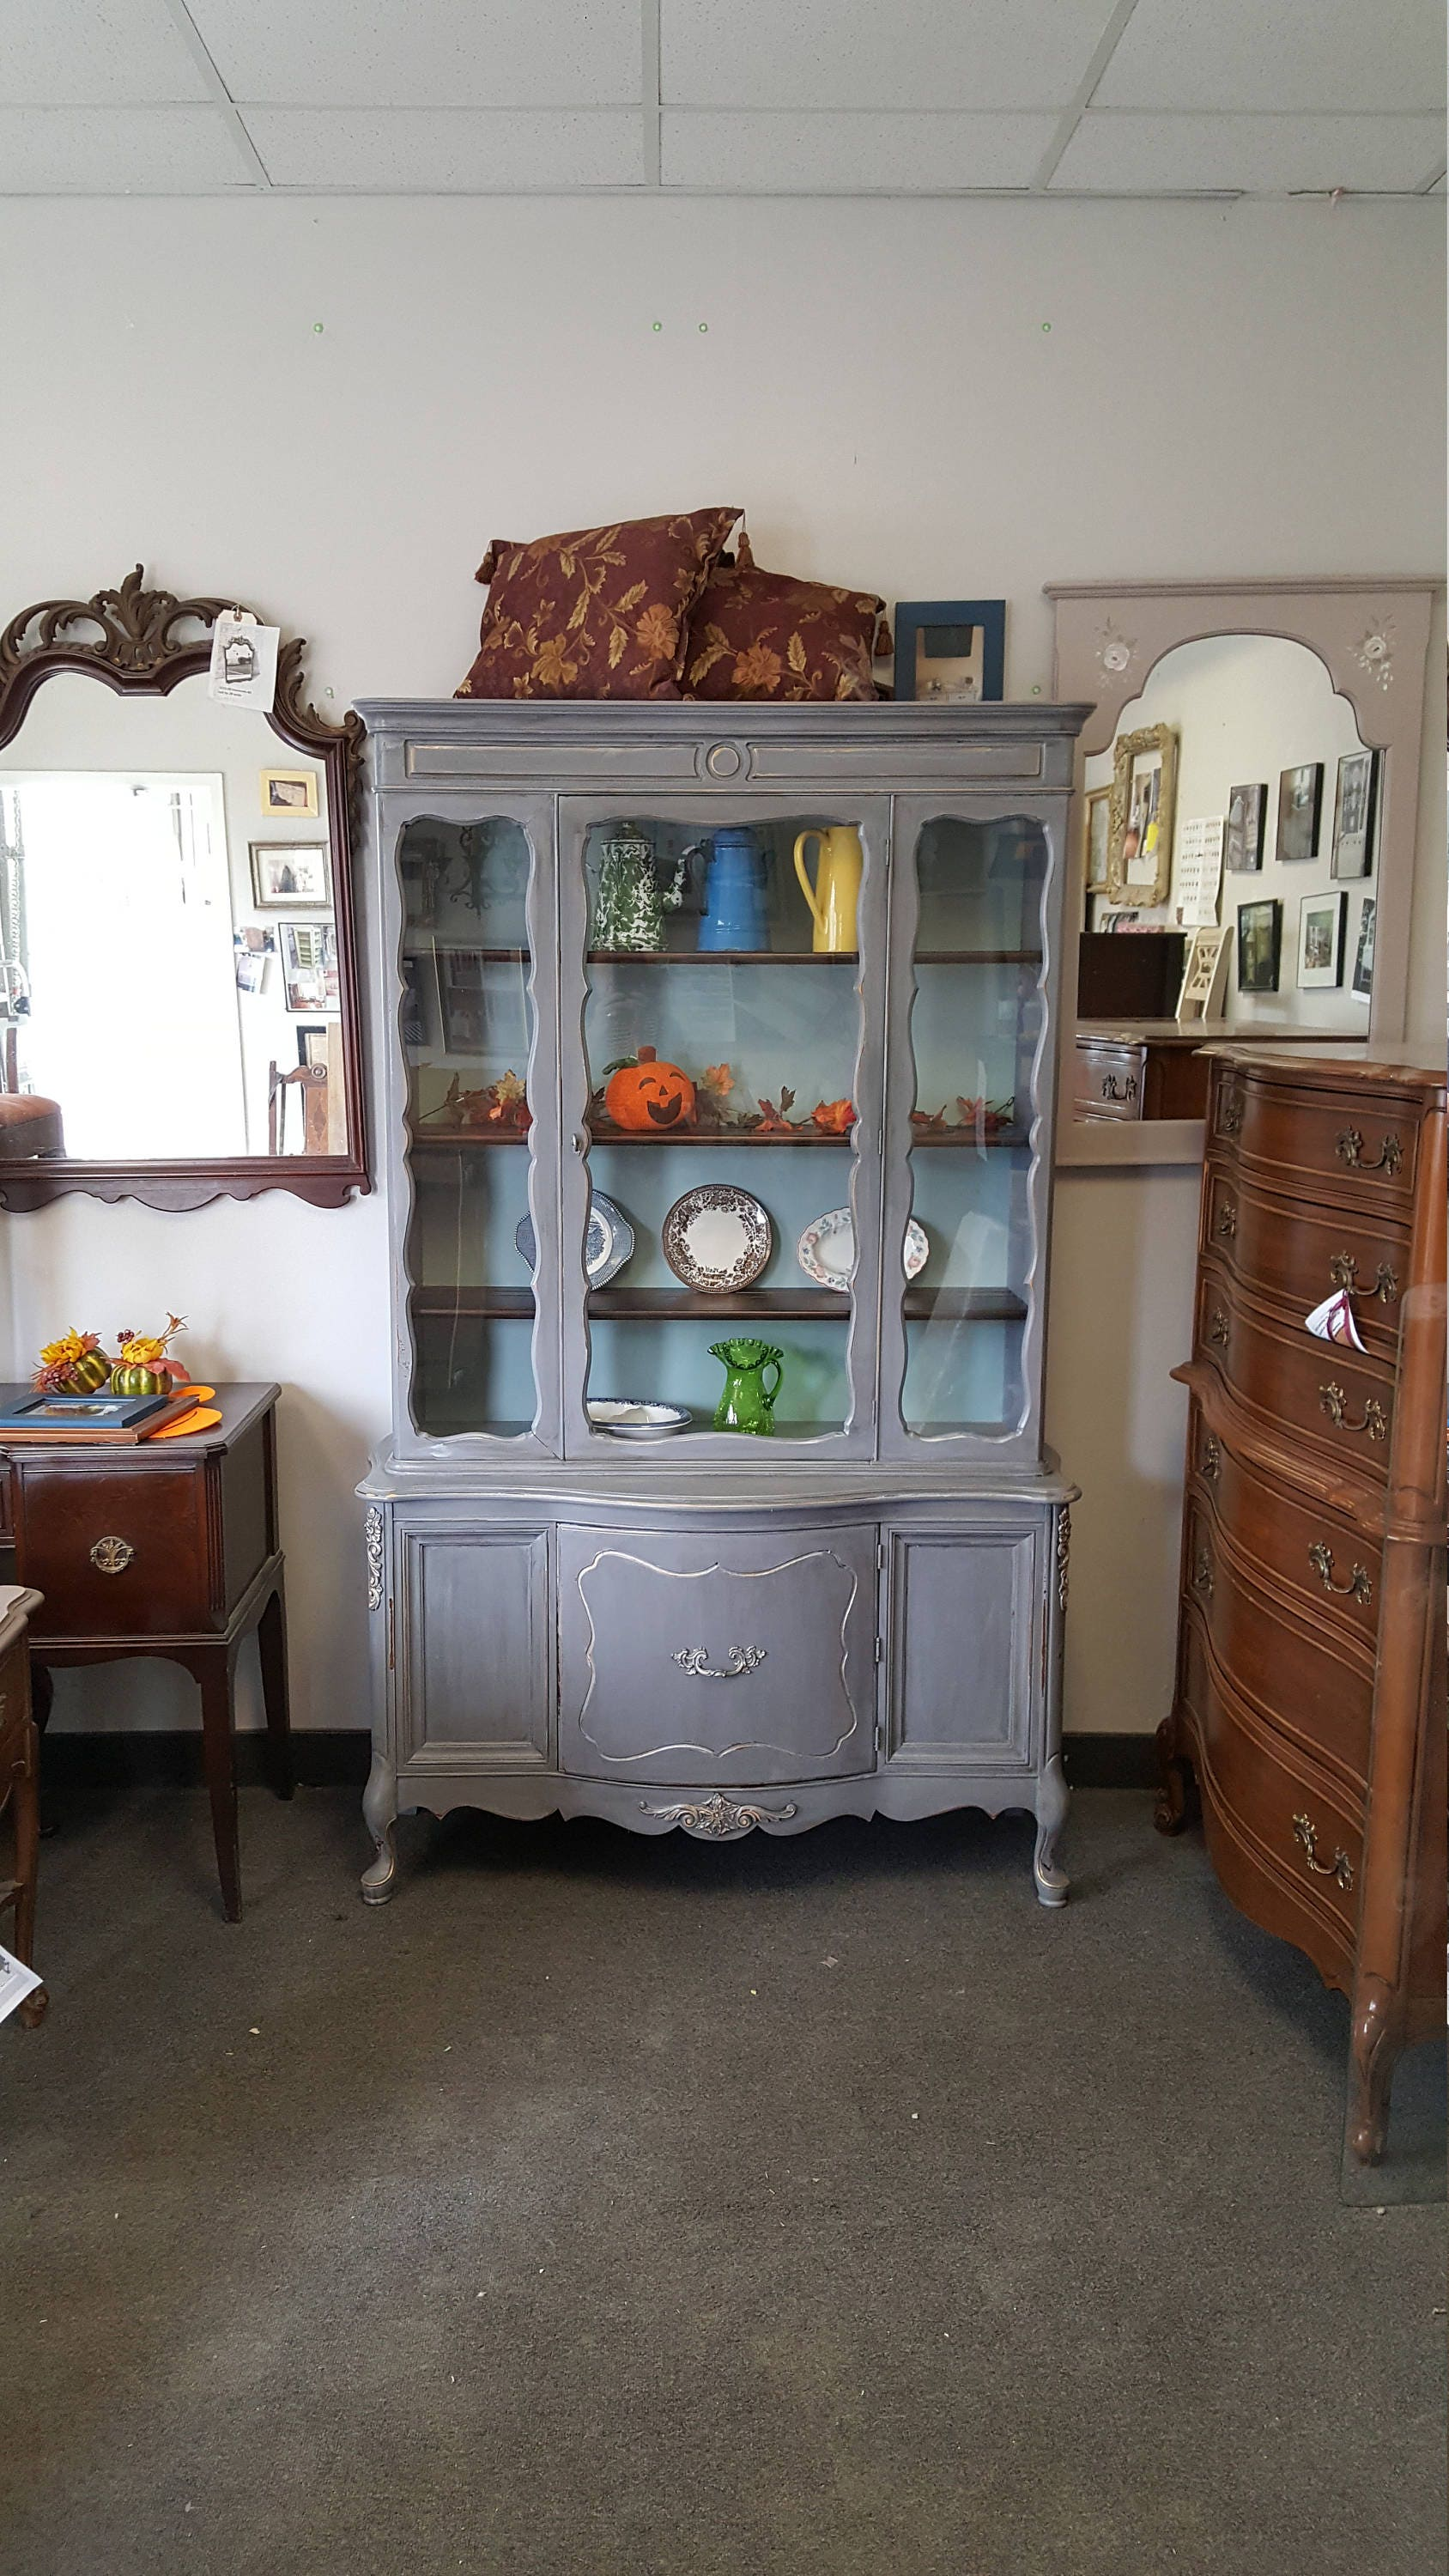 French country china cabinets - Vintage Shabby Chic French Provincial Hutch Pantry China Cabinet Pick Up Only Kitchen Storage Breakfront French Country France Cottage